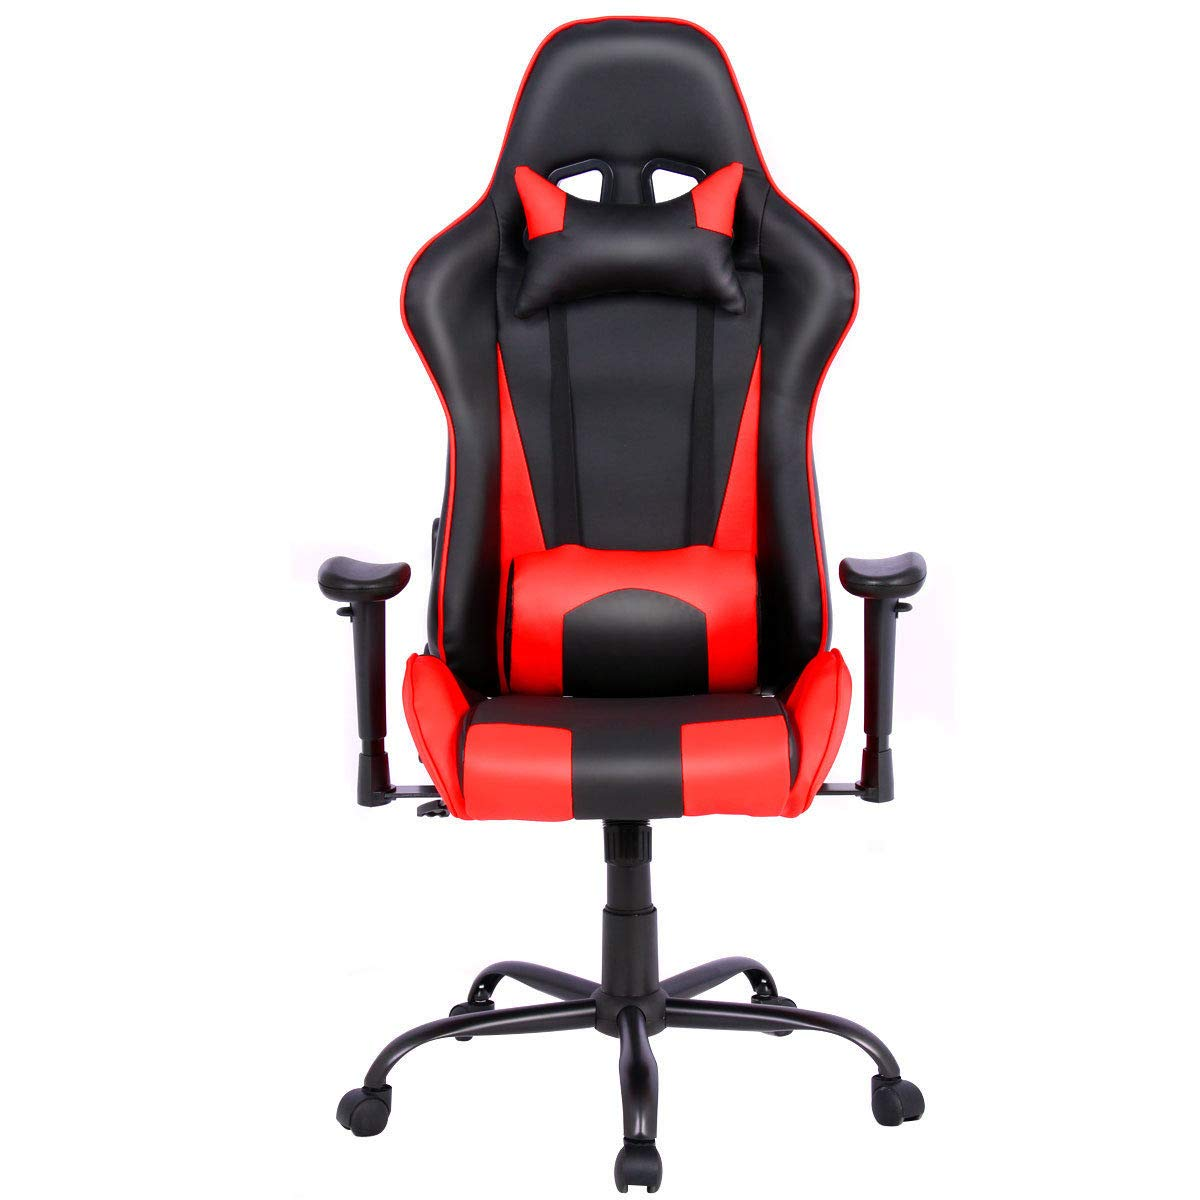 Tremendous Ghp 300 Lbs Capacity Black Red Leather Full Recline Racing Style Gaming Chair Forskolin Free Trial Chair Design Images Forskolin Free Trialorg